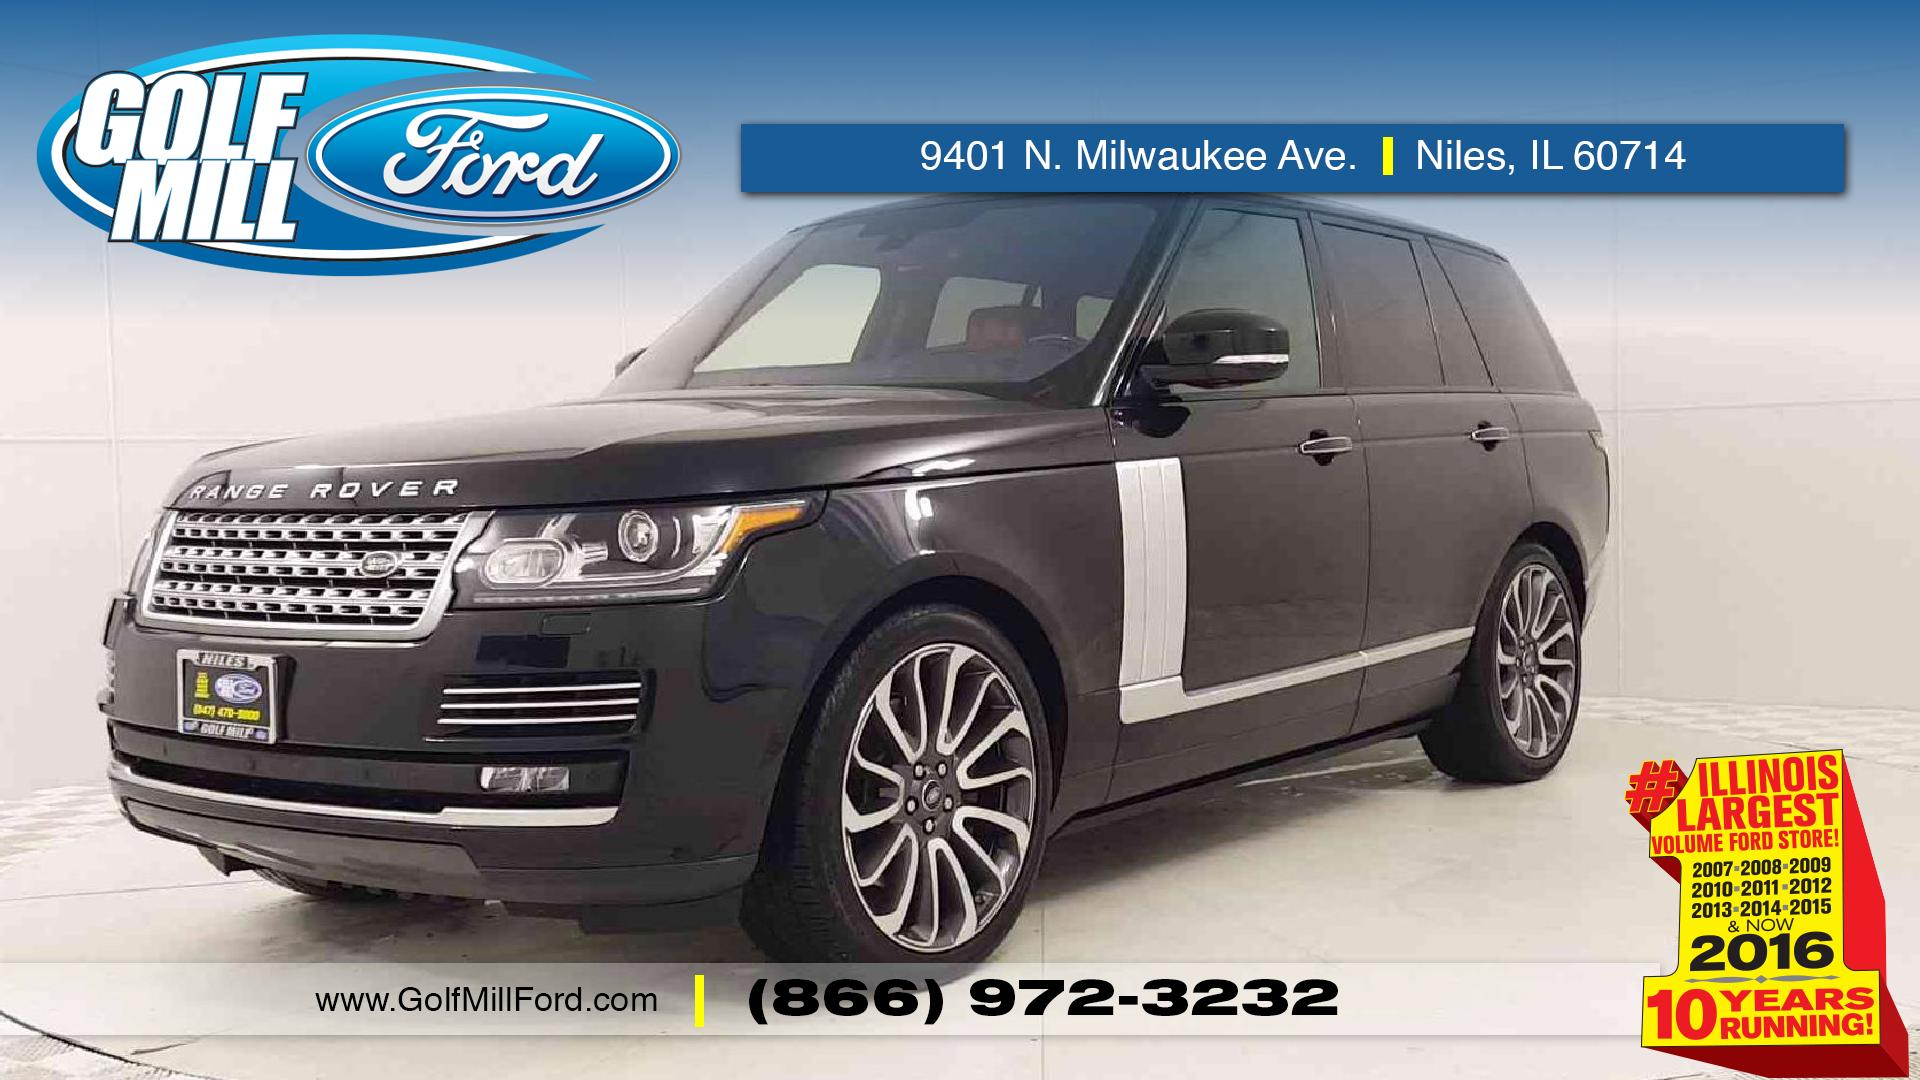 Used Land Rover for Sale in Niles IL Golf Mill Ford